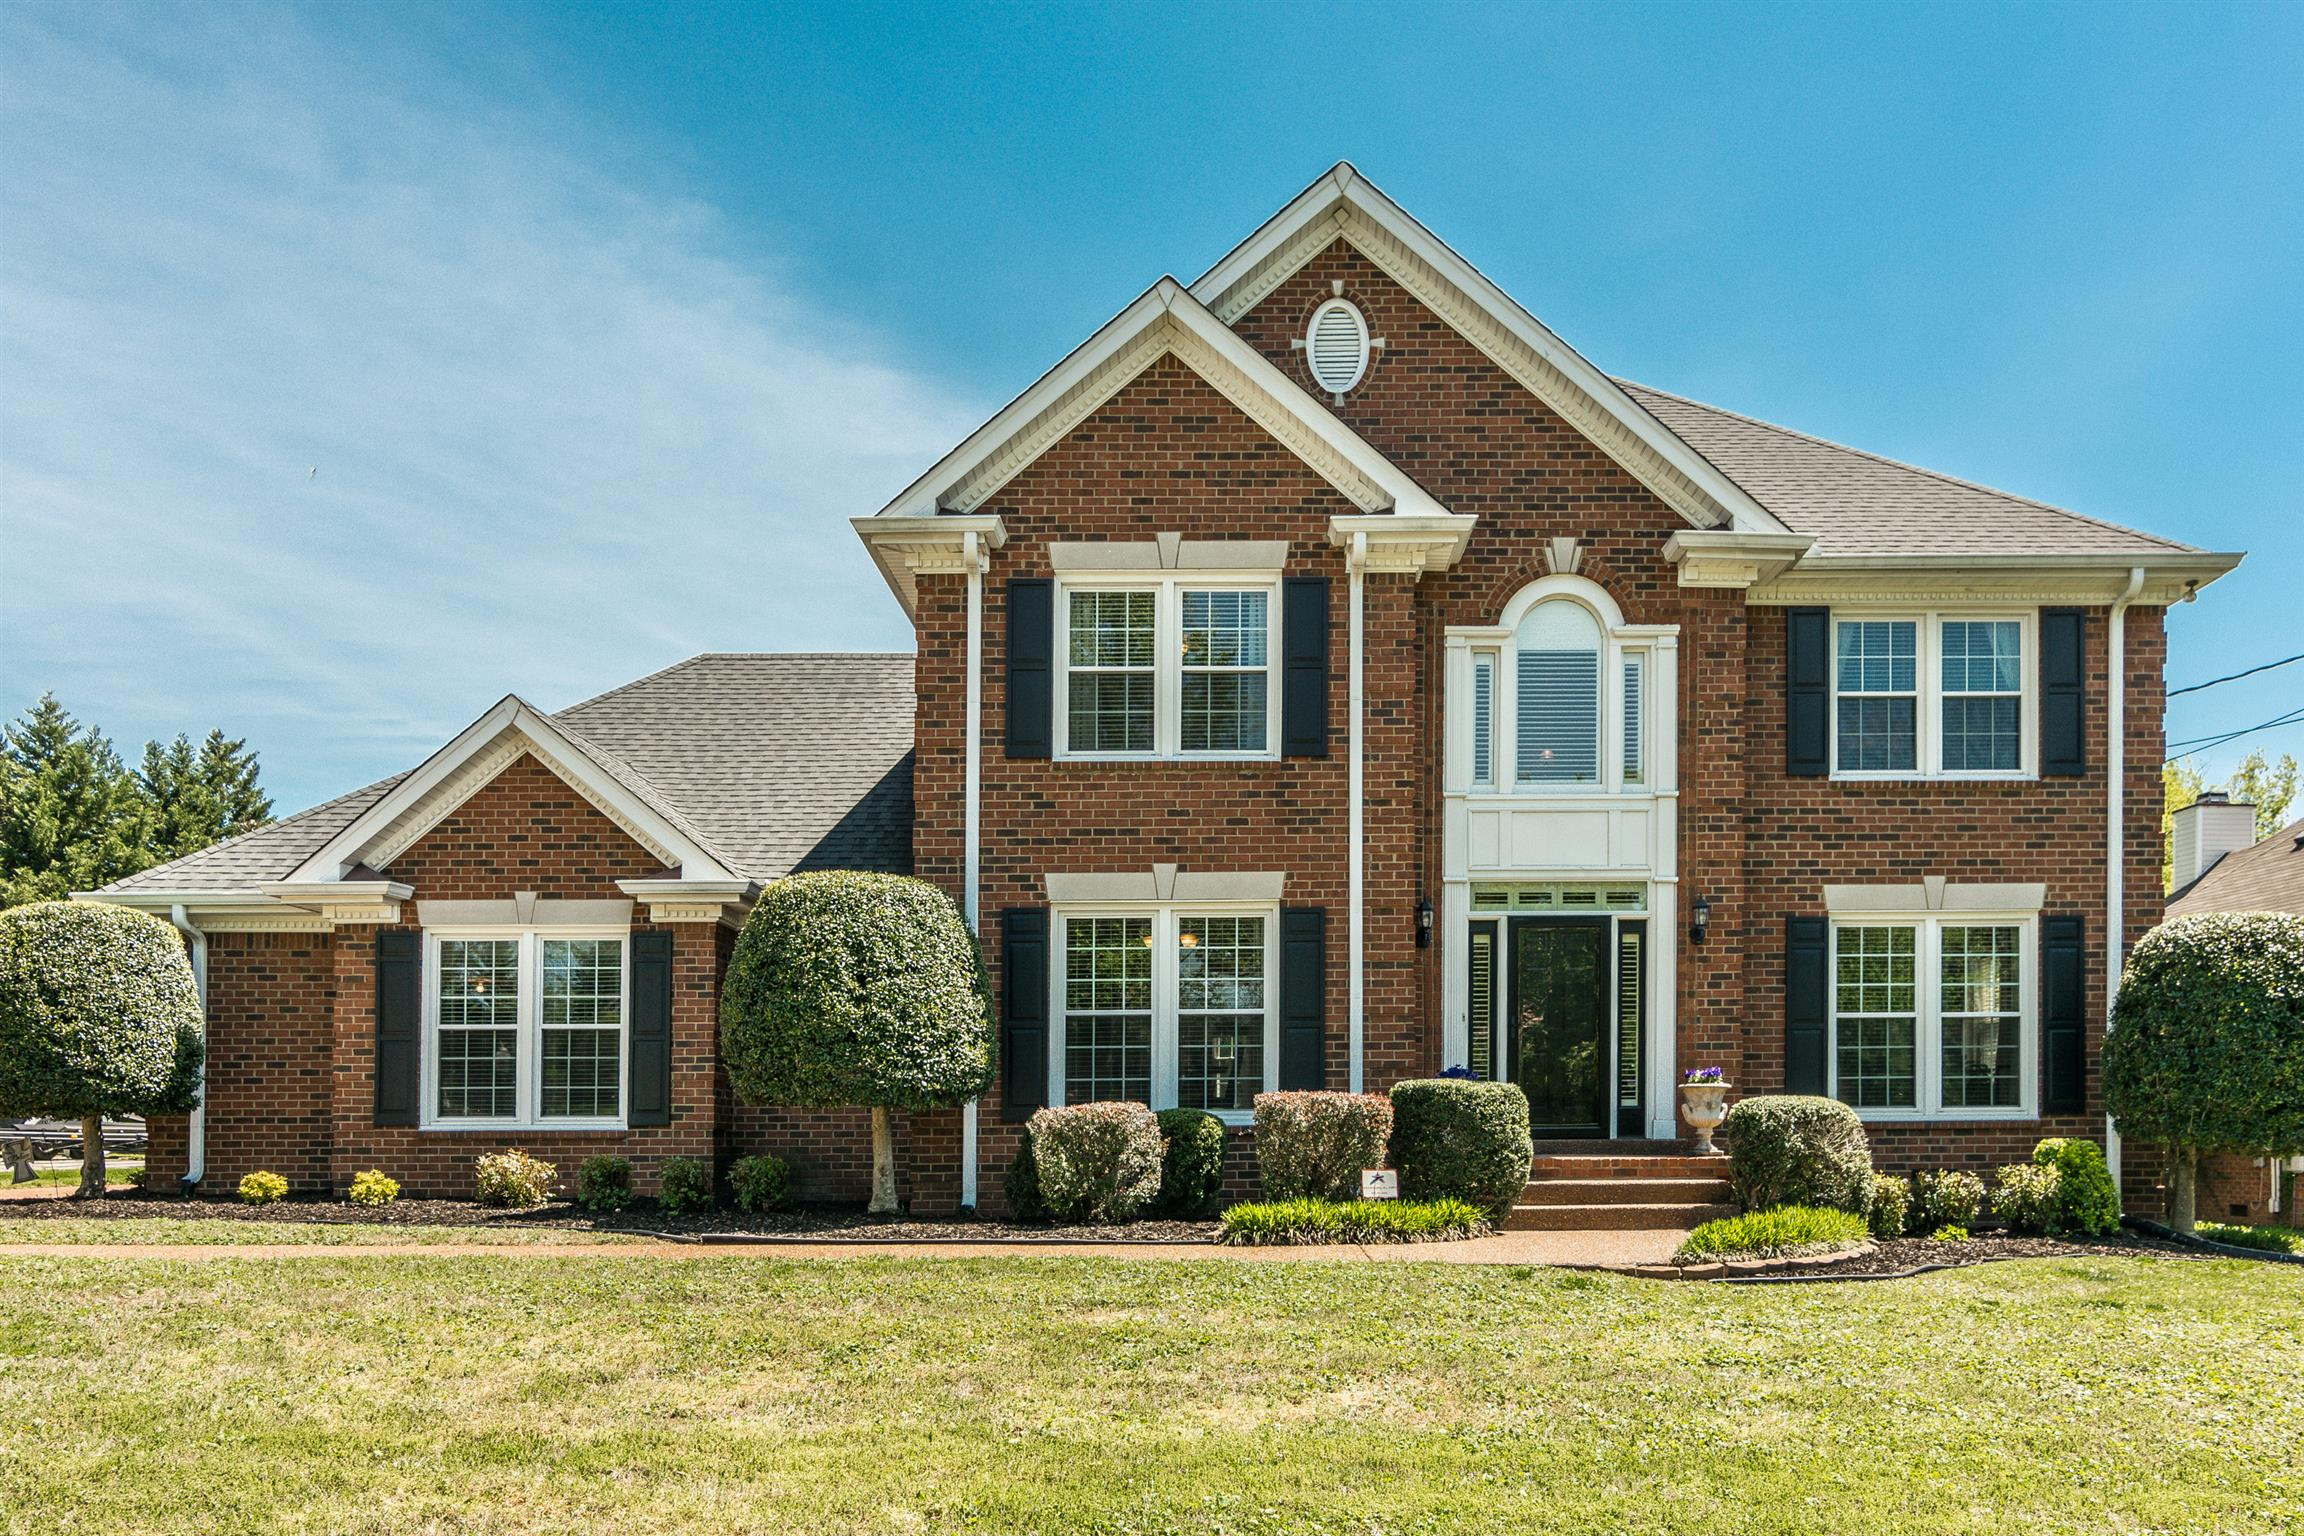 109 Wickham Ct Hendersonville, TN 37075